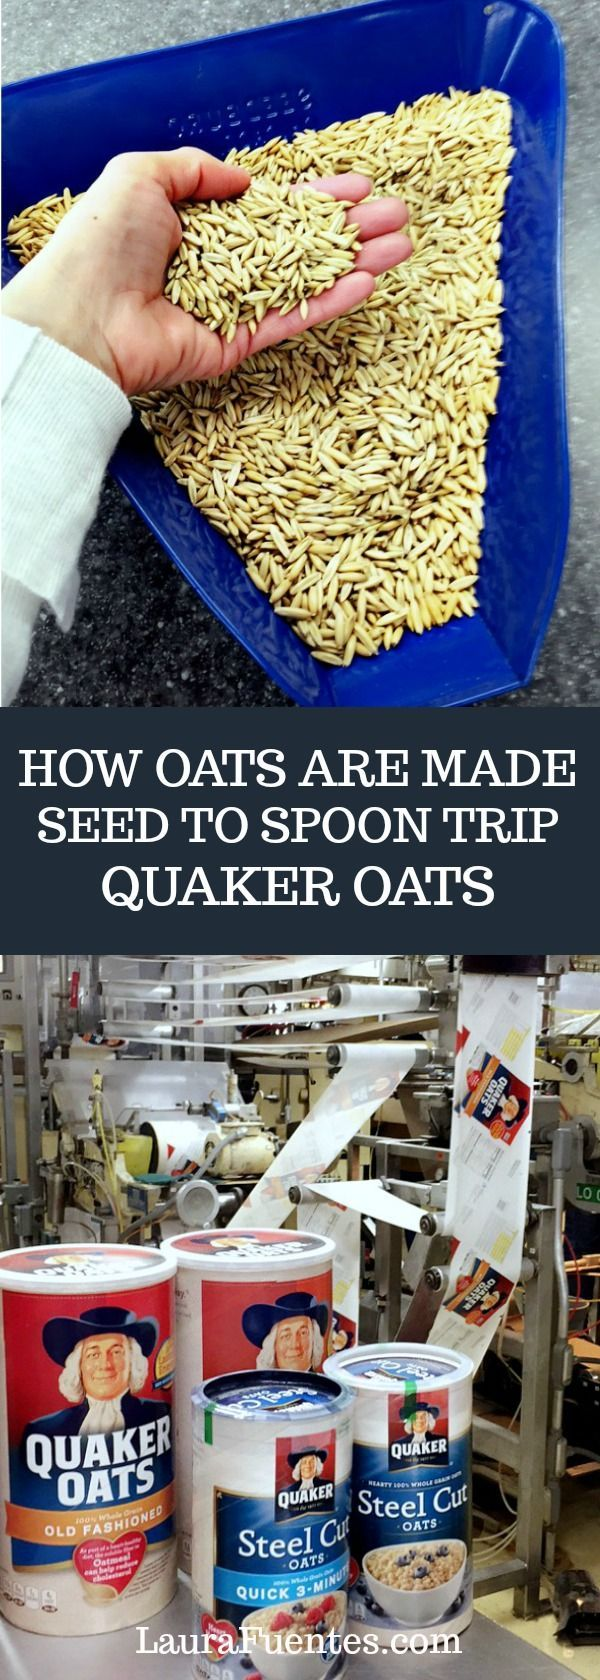 Passion and focus on making quality oats are a few of the things I learned from @Quaker in Iowa.  #ad #SeedtoSpoon